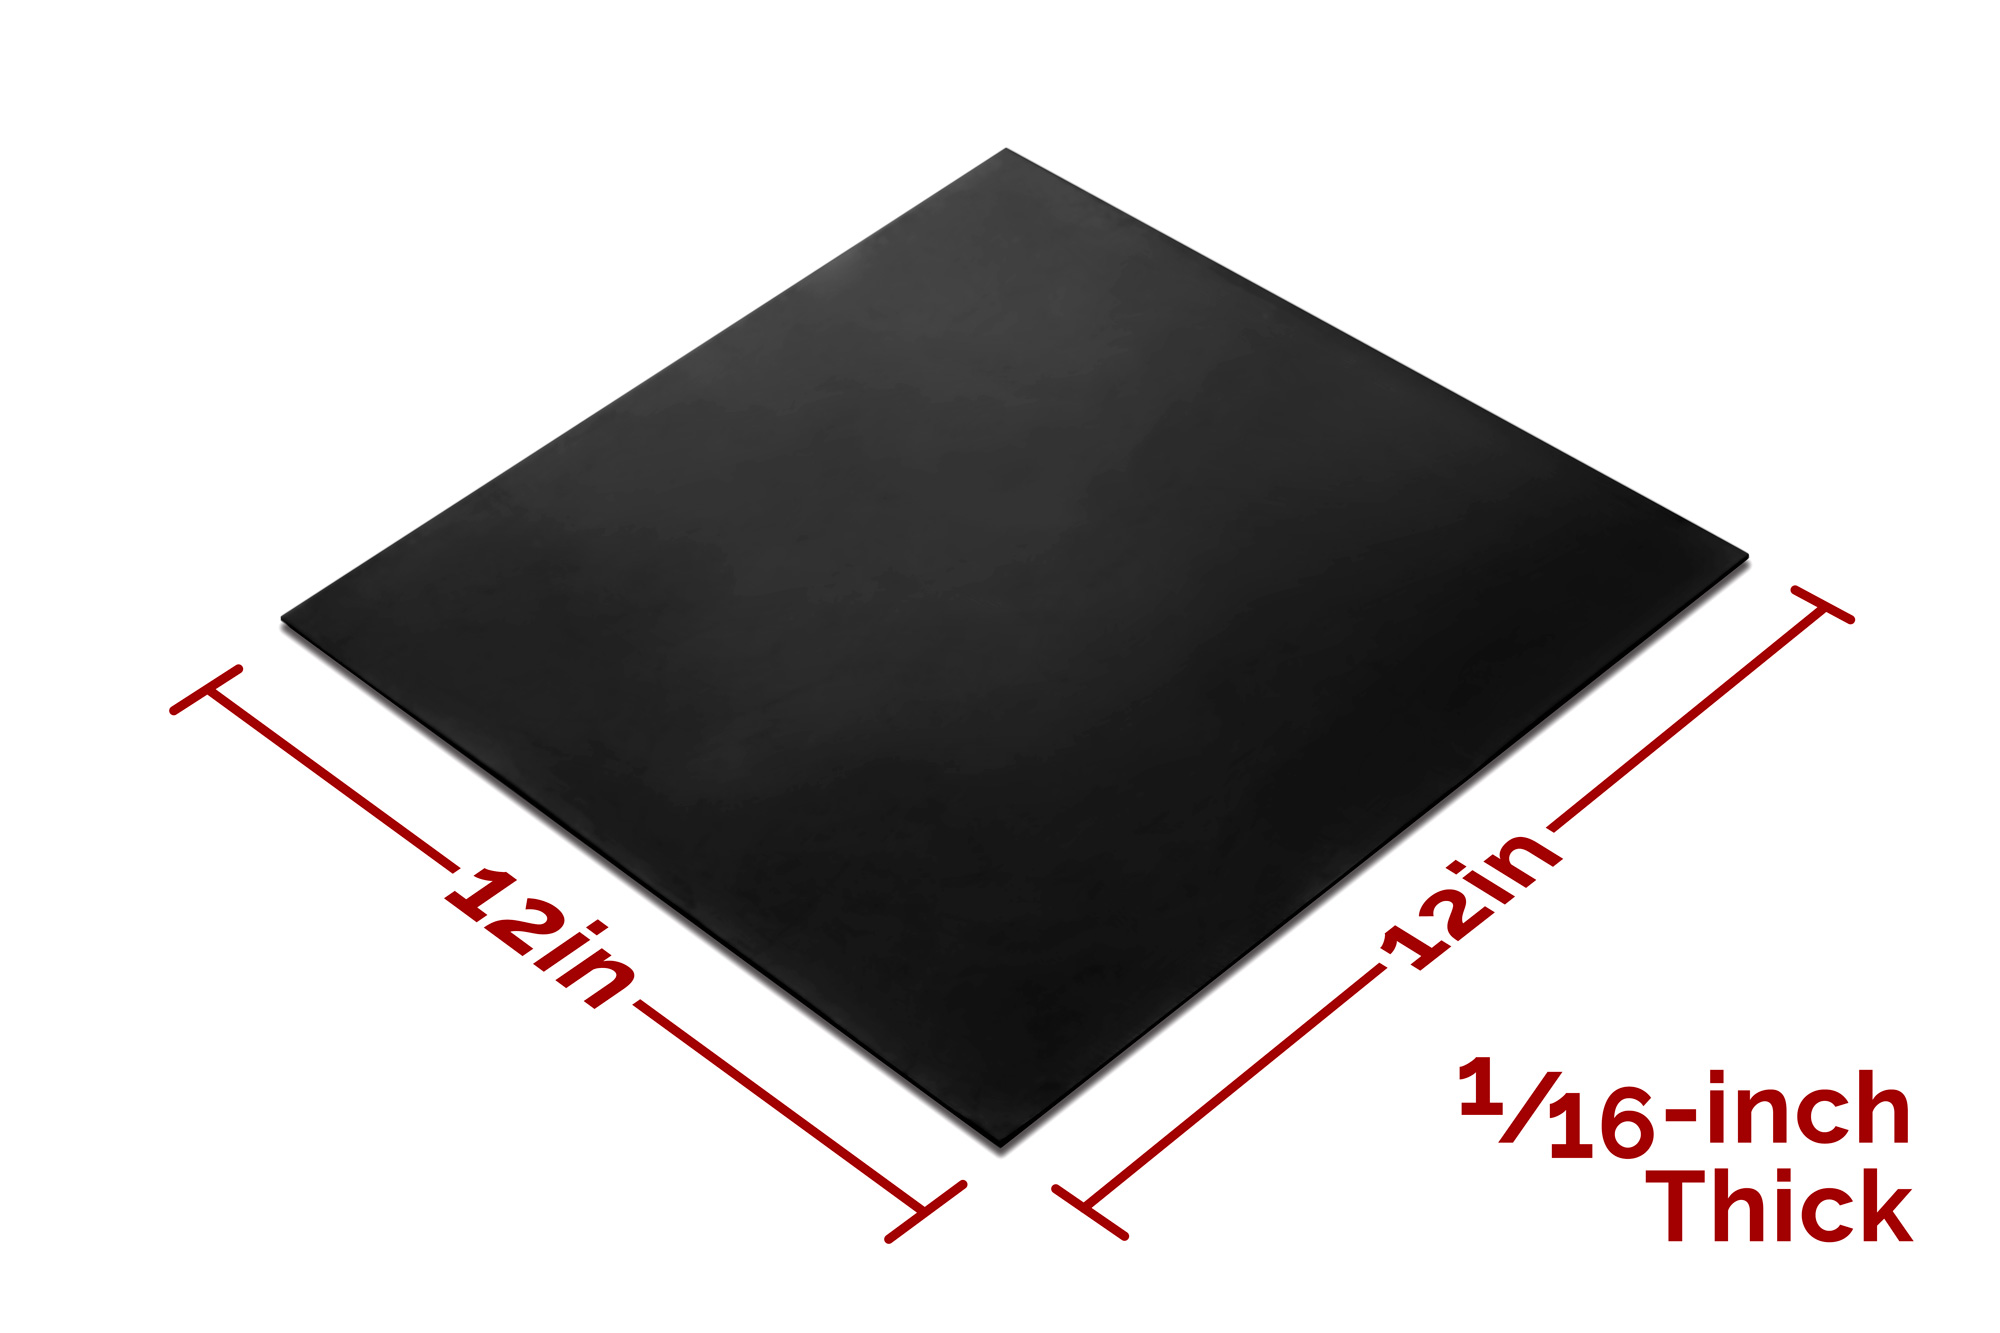 Rubber Sheets Black Smooth Finish 12 215 12 Inch By 1 16 Pack Of 3 Elitegizmo